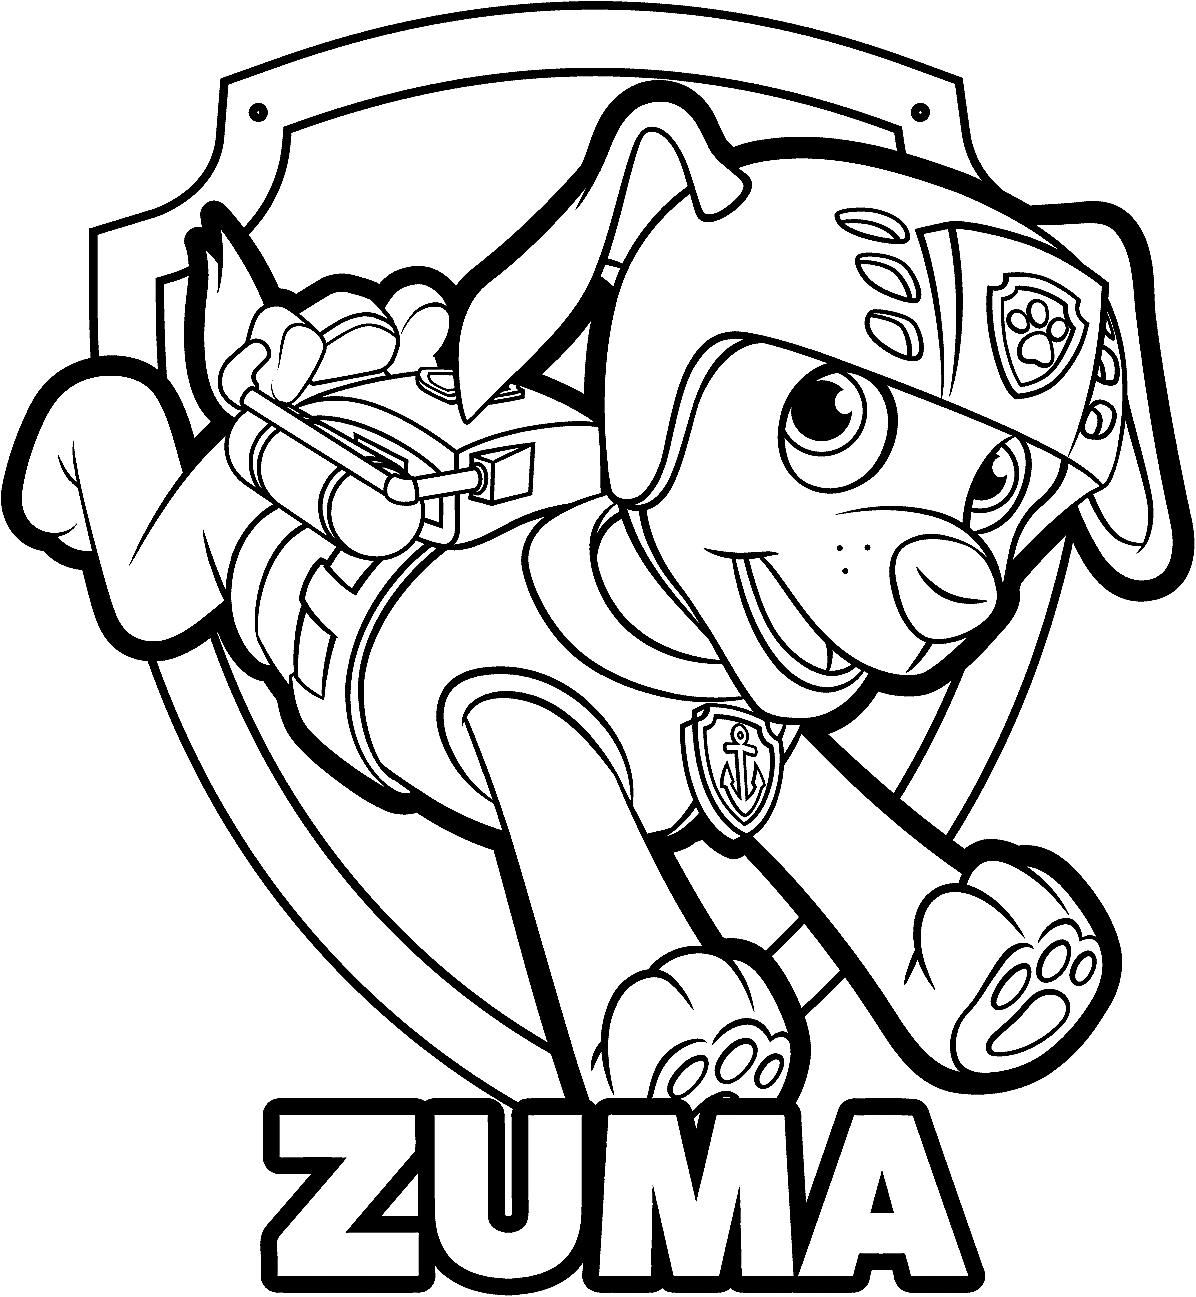 paw patrol characters paw patrol coloring pages printable free coloring sheets characters paw patrol